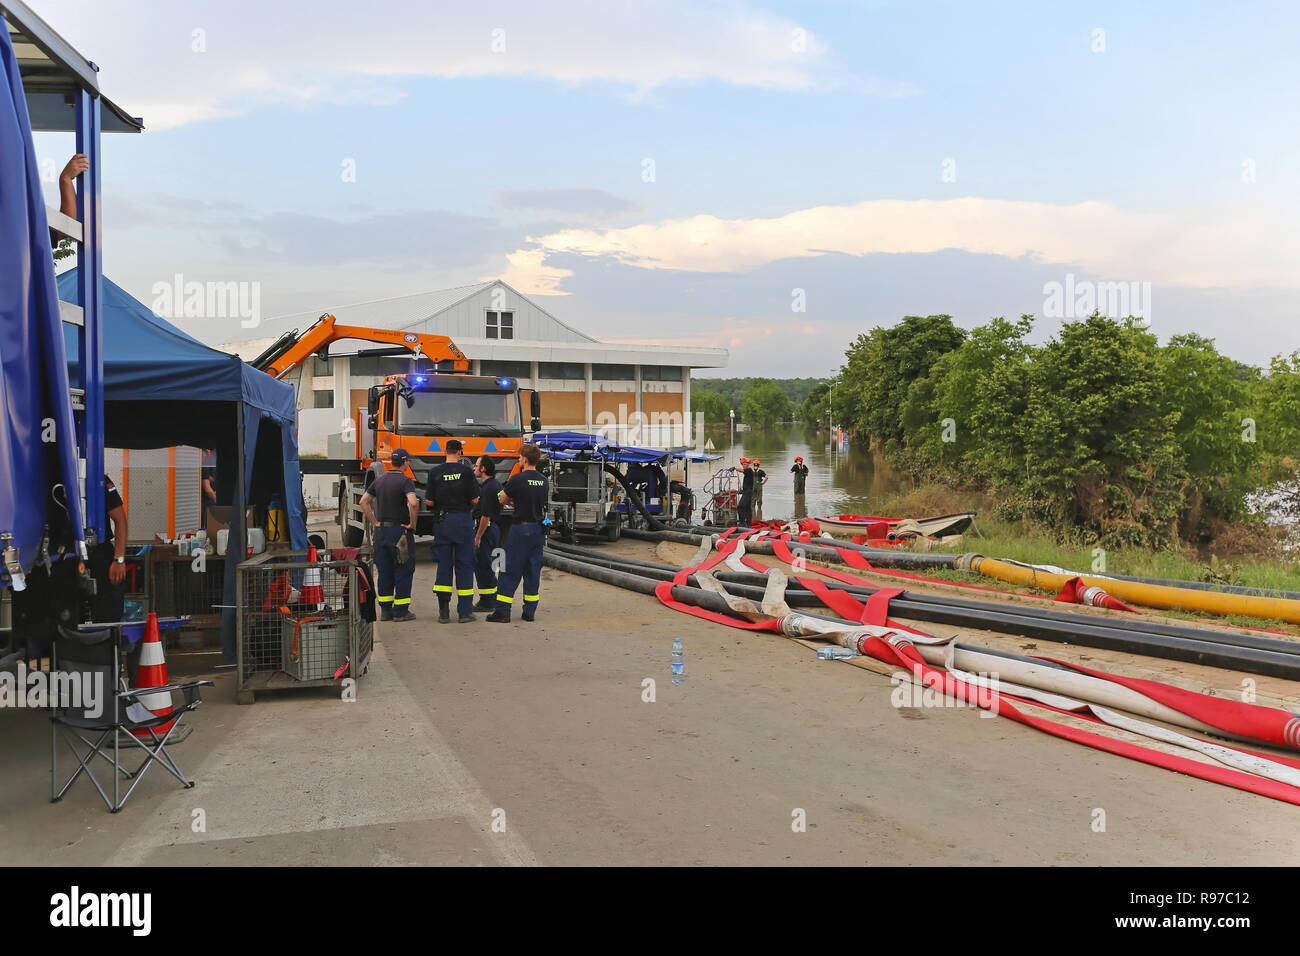 OBRENOVAC, SERBIA - MAY 24: Emergency service THW in Obrenovac on MAY 24, 2014. Germany Federal Agency for Technical Relief during floods in Obrenovac - Stock Image